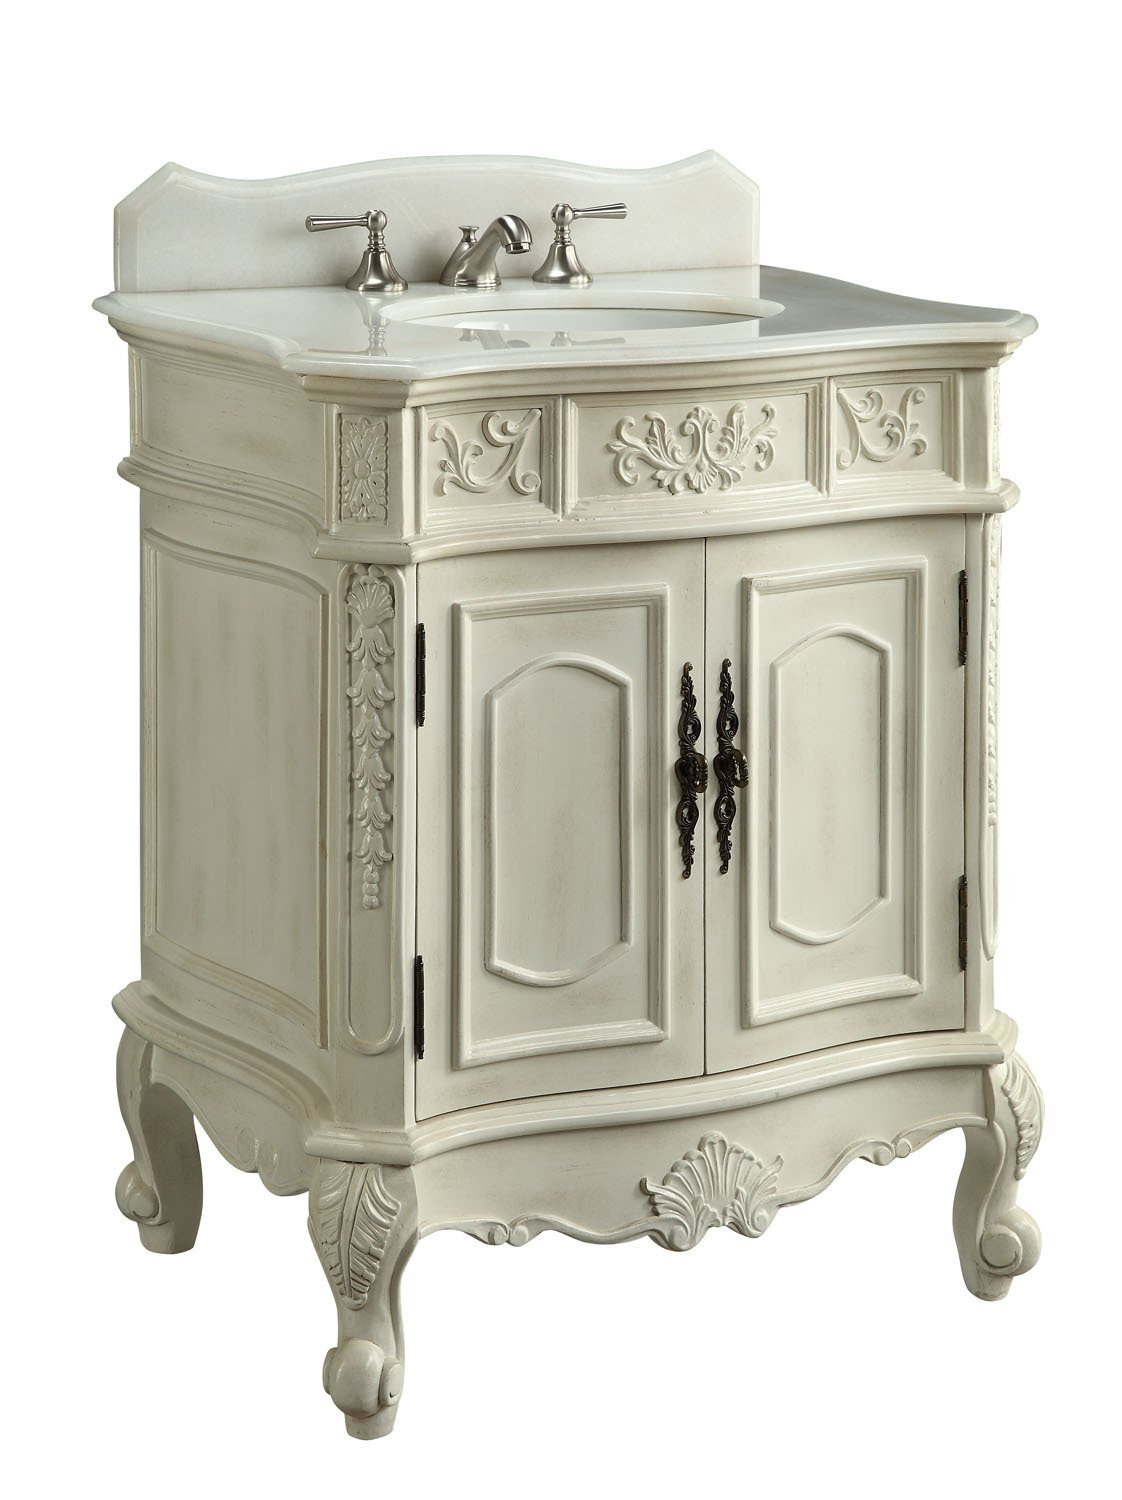 ... Bathroom Vanity Adelina 30 inch Antique White Single Sink - Adelina 30 Inch Antique White Single Sink Bathroom Vanity, Antique